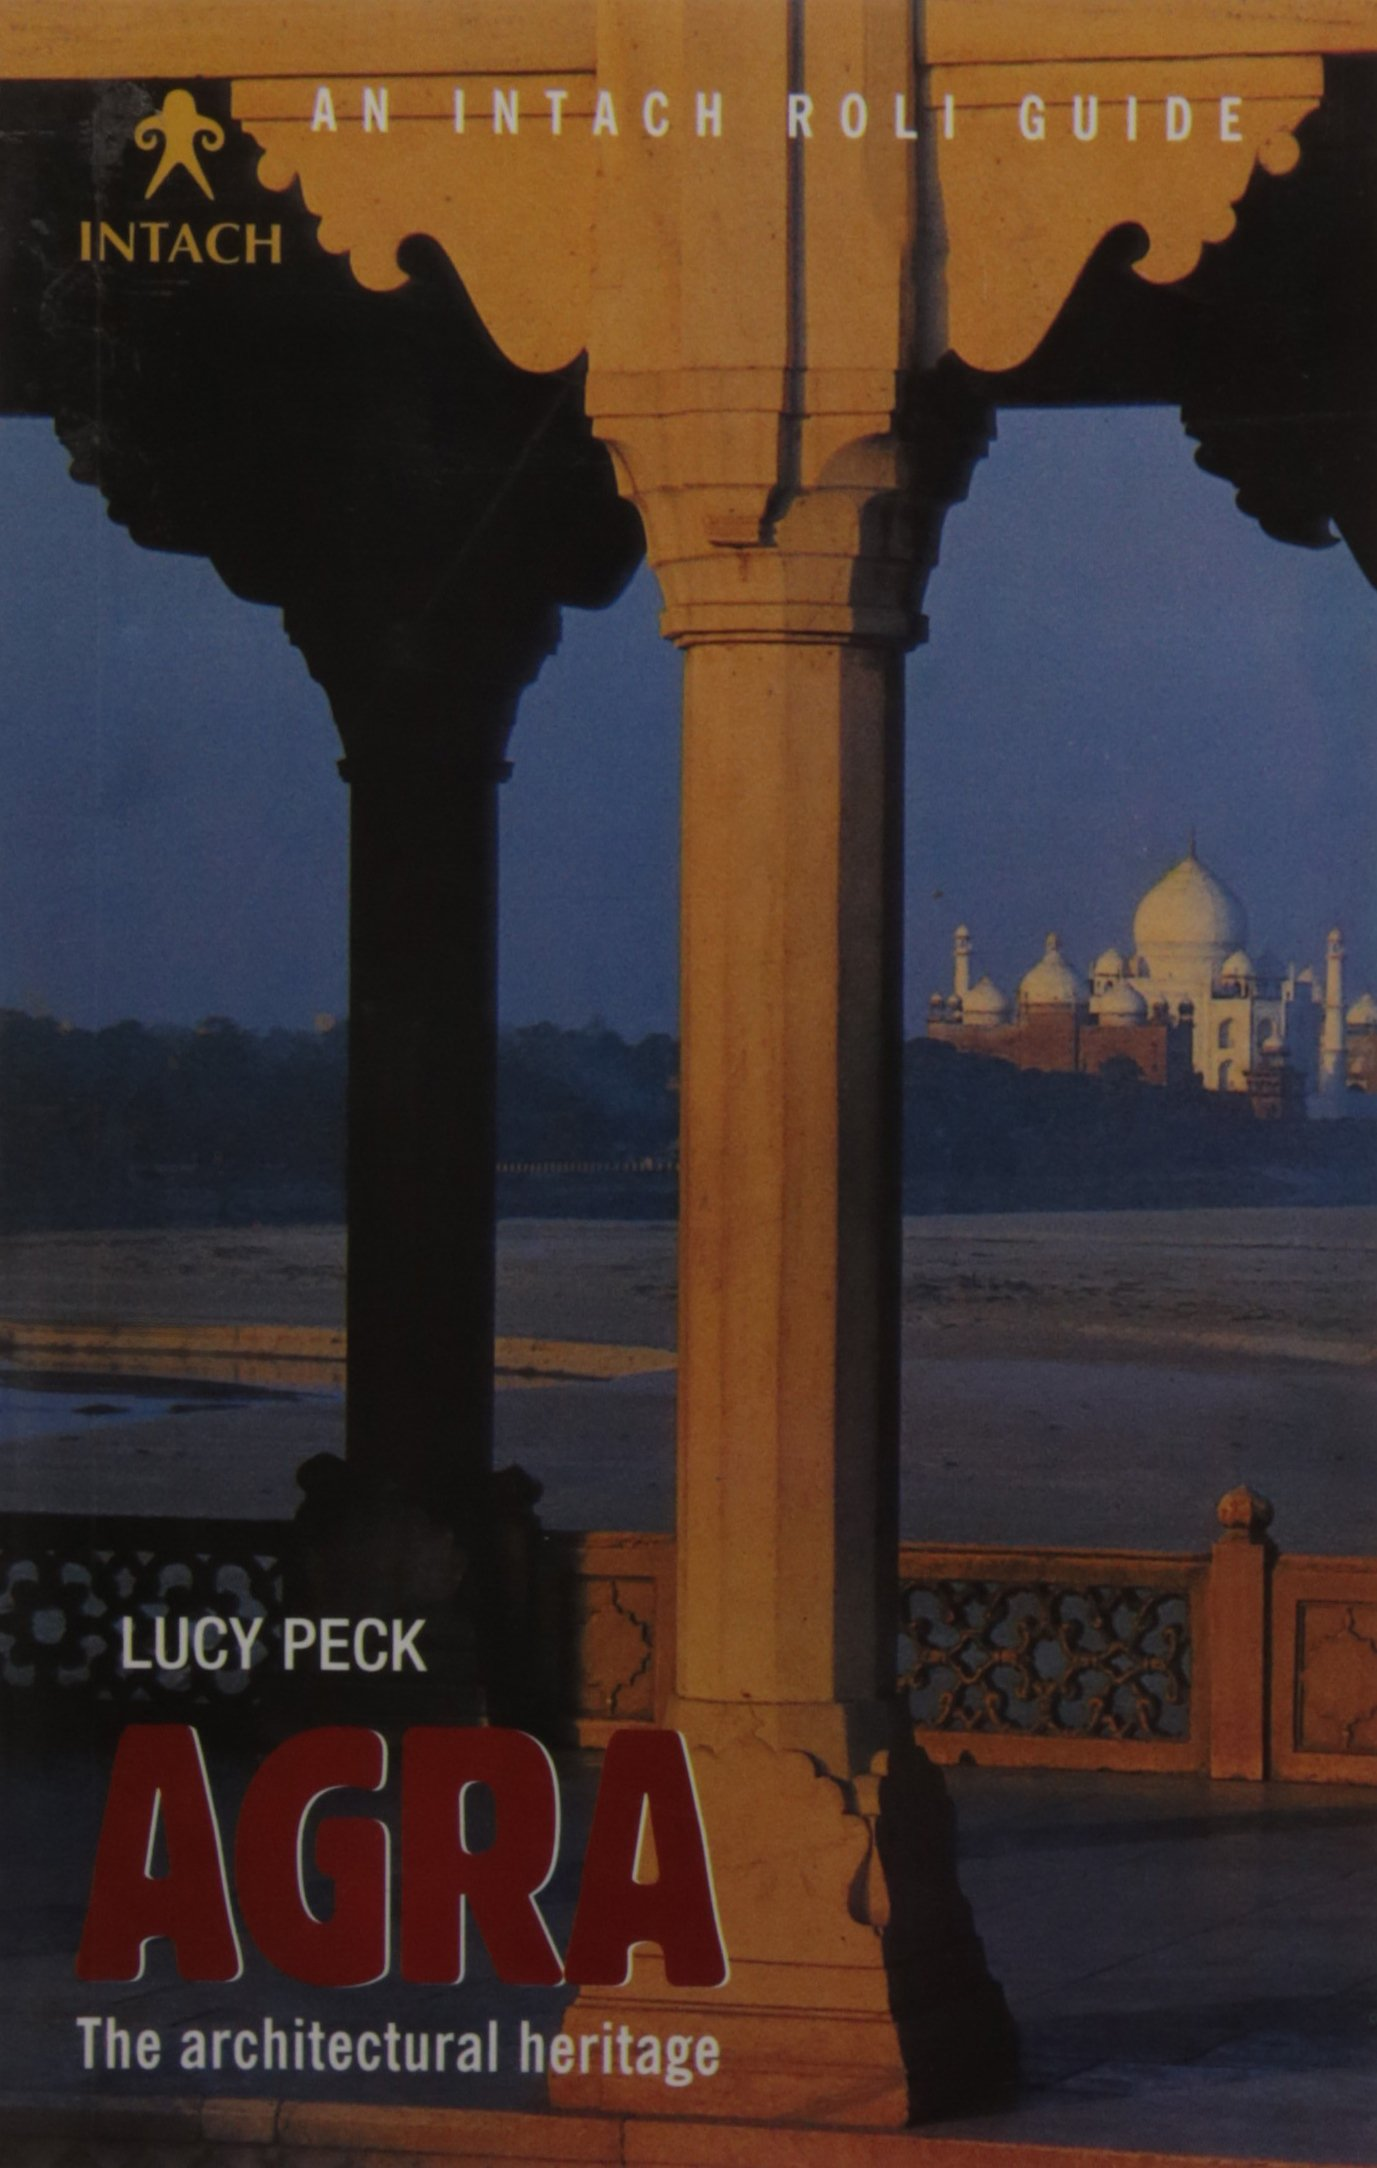 Agra: The Architectural Heritage (Intach Guides) (Intach Roli Guides) Paperback